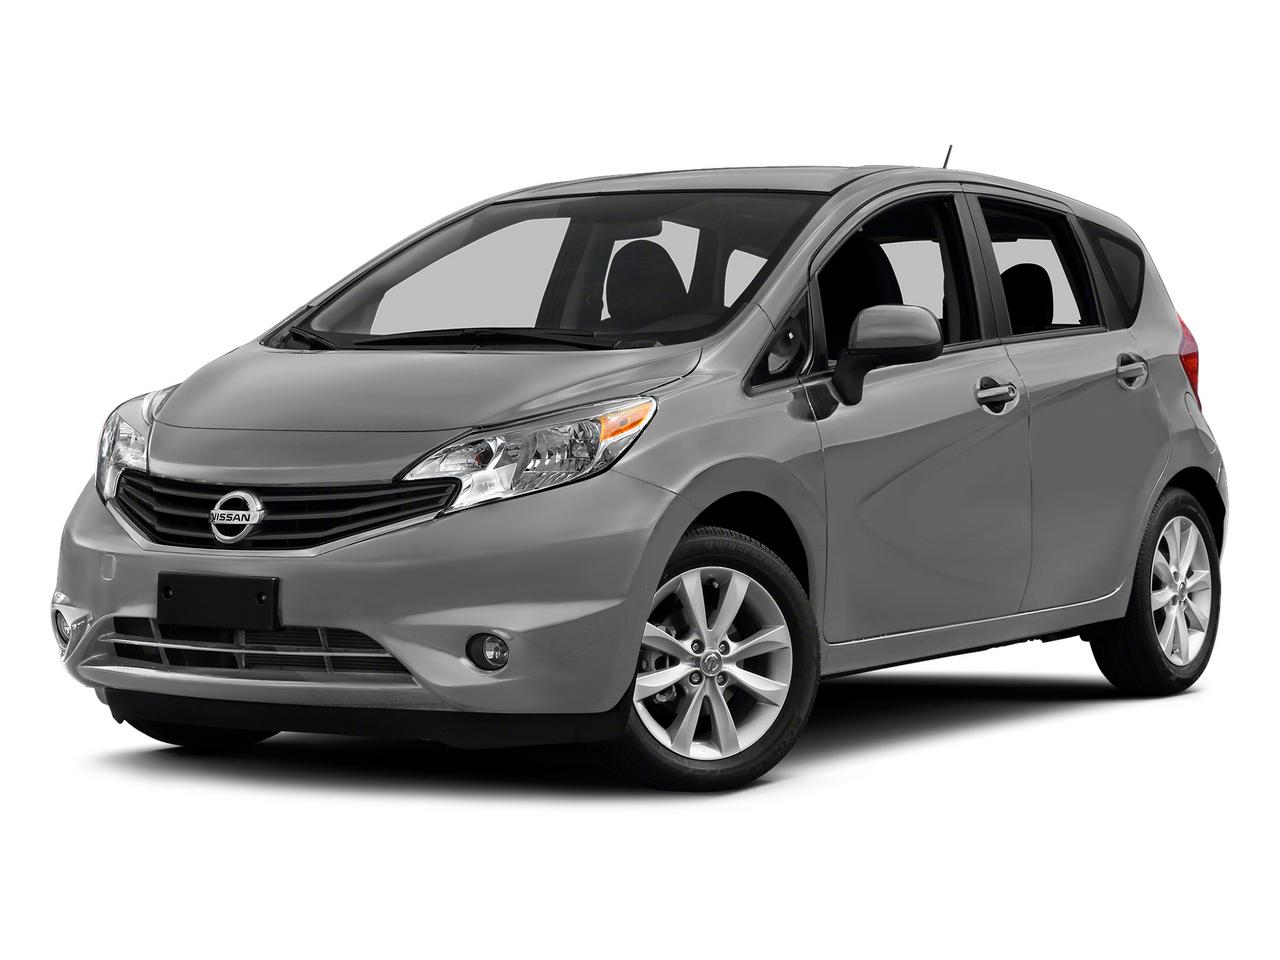 2015 Nissan Versa Note Vehicle Photo in Easton, MD 21601